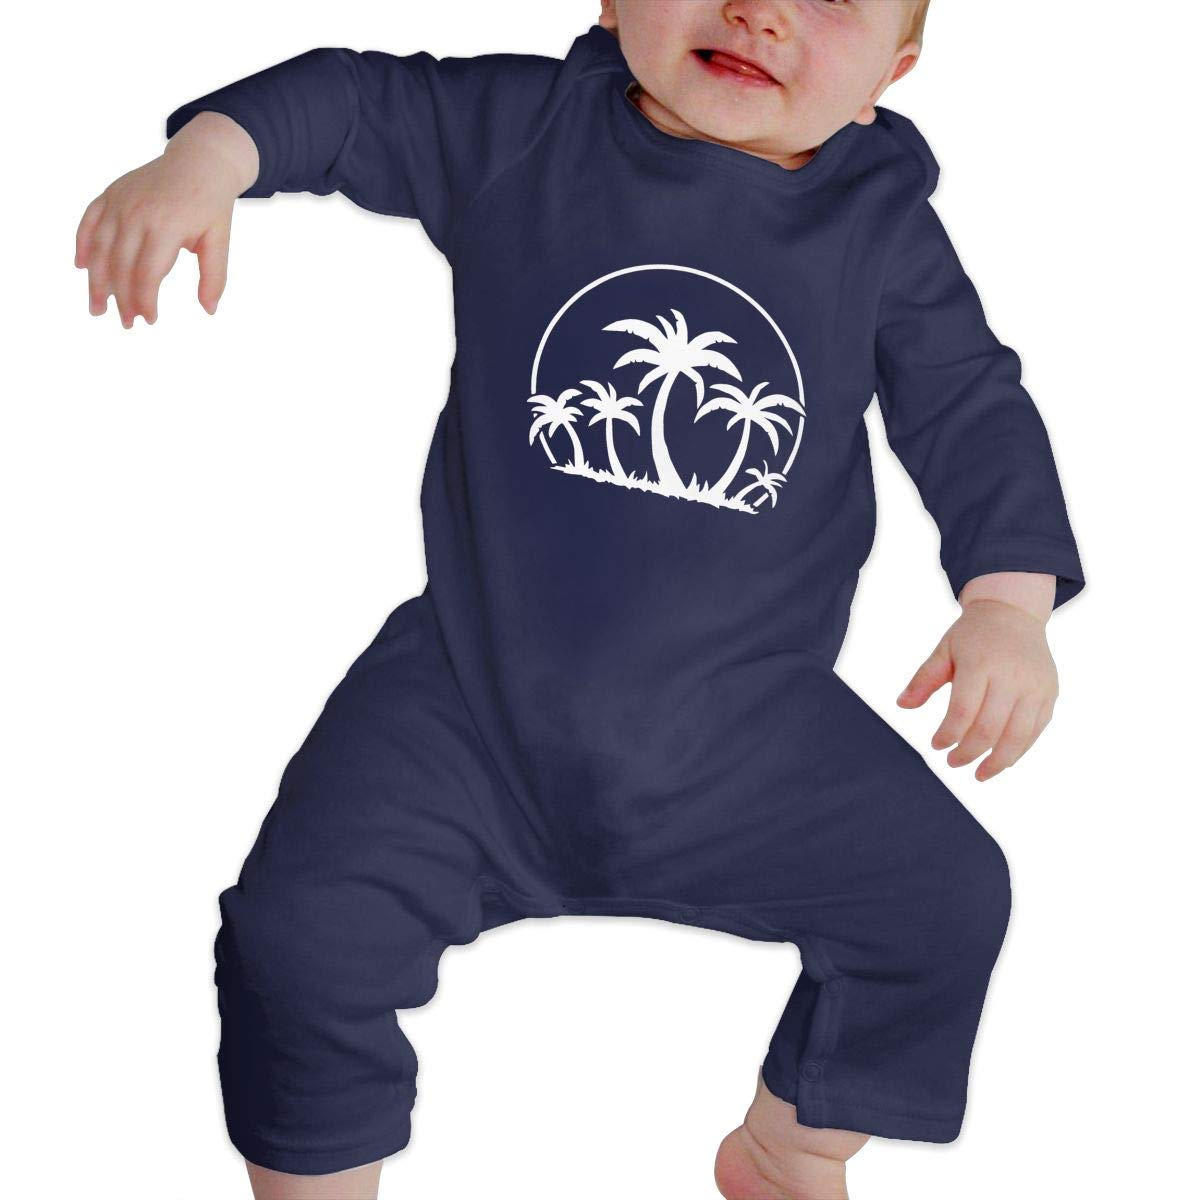 Suit 6-24 Months Q64 Toddler Round Collar Palm Trees Long Sleeve Pajamas Sleepwear 100/% Cotton